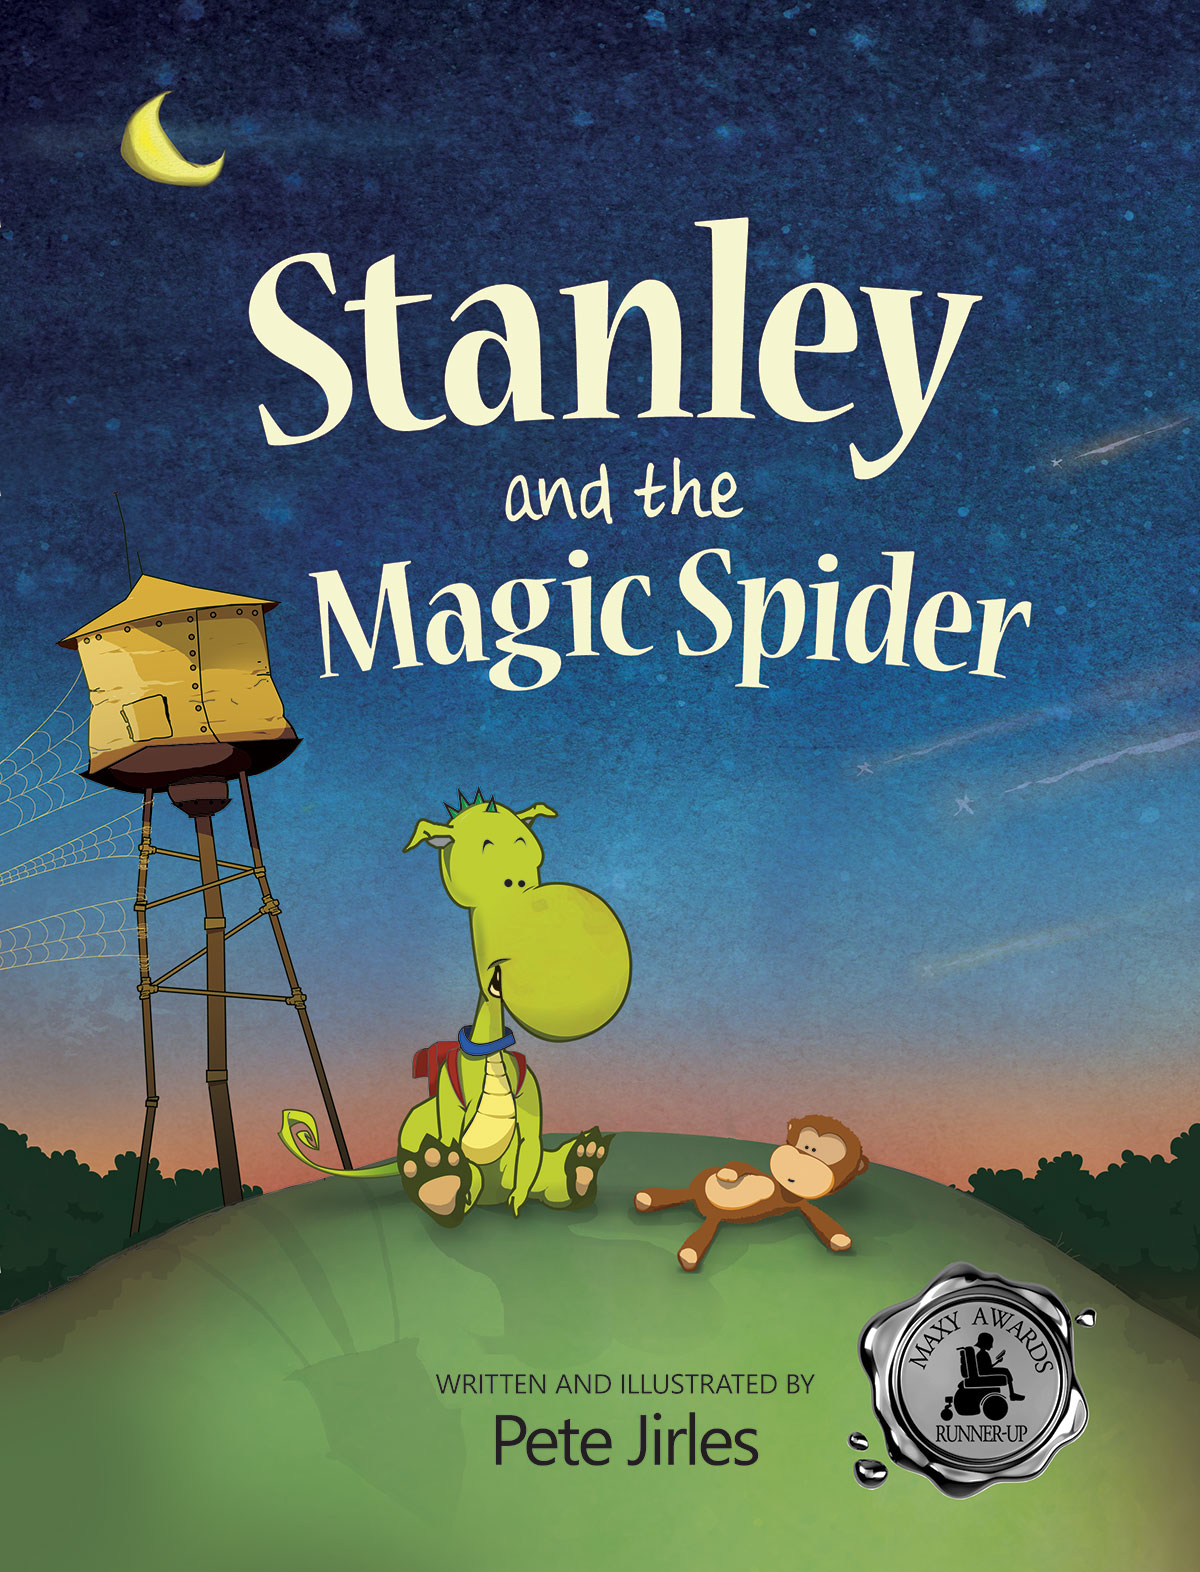 Stanley and the Magic Spider full cover